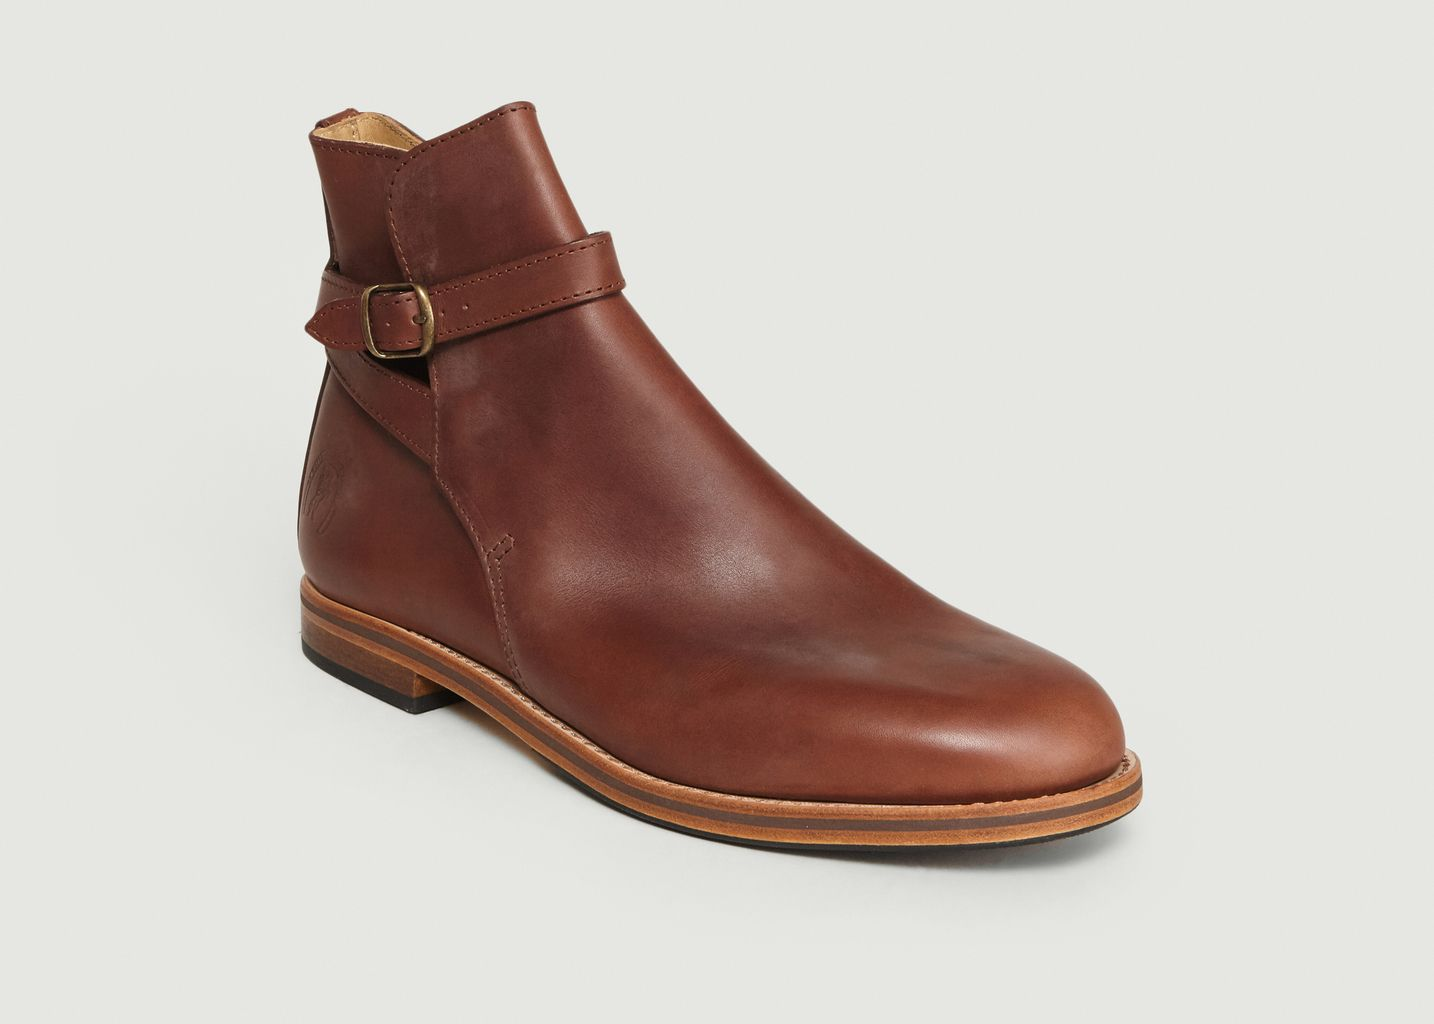 Jodhpur Gardiane Botte La Bottines Marron L'exception xHZ0qwxAC